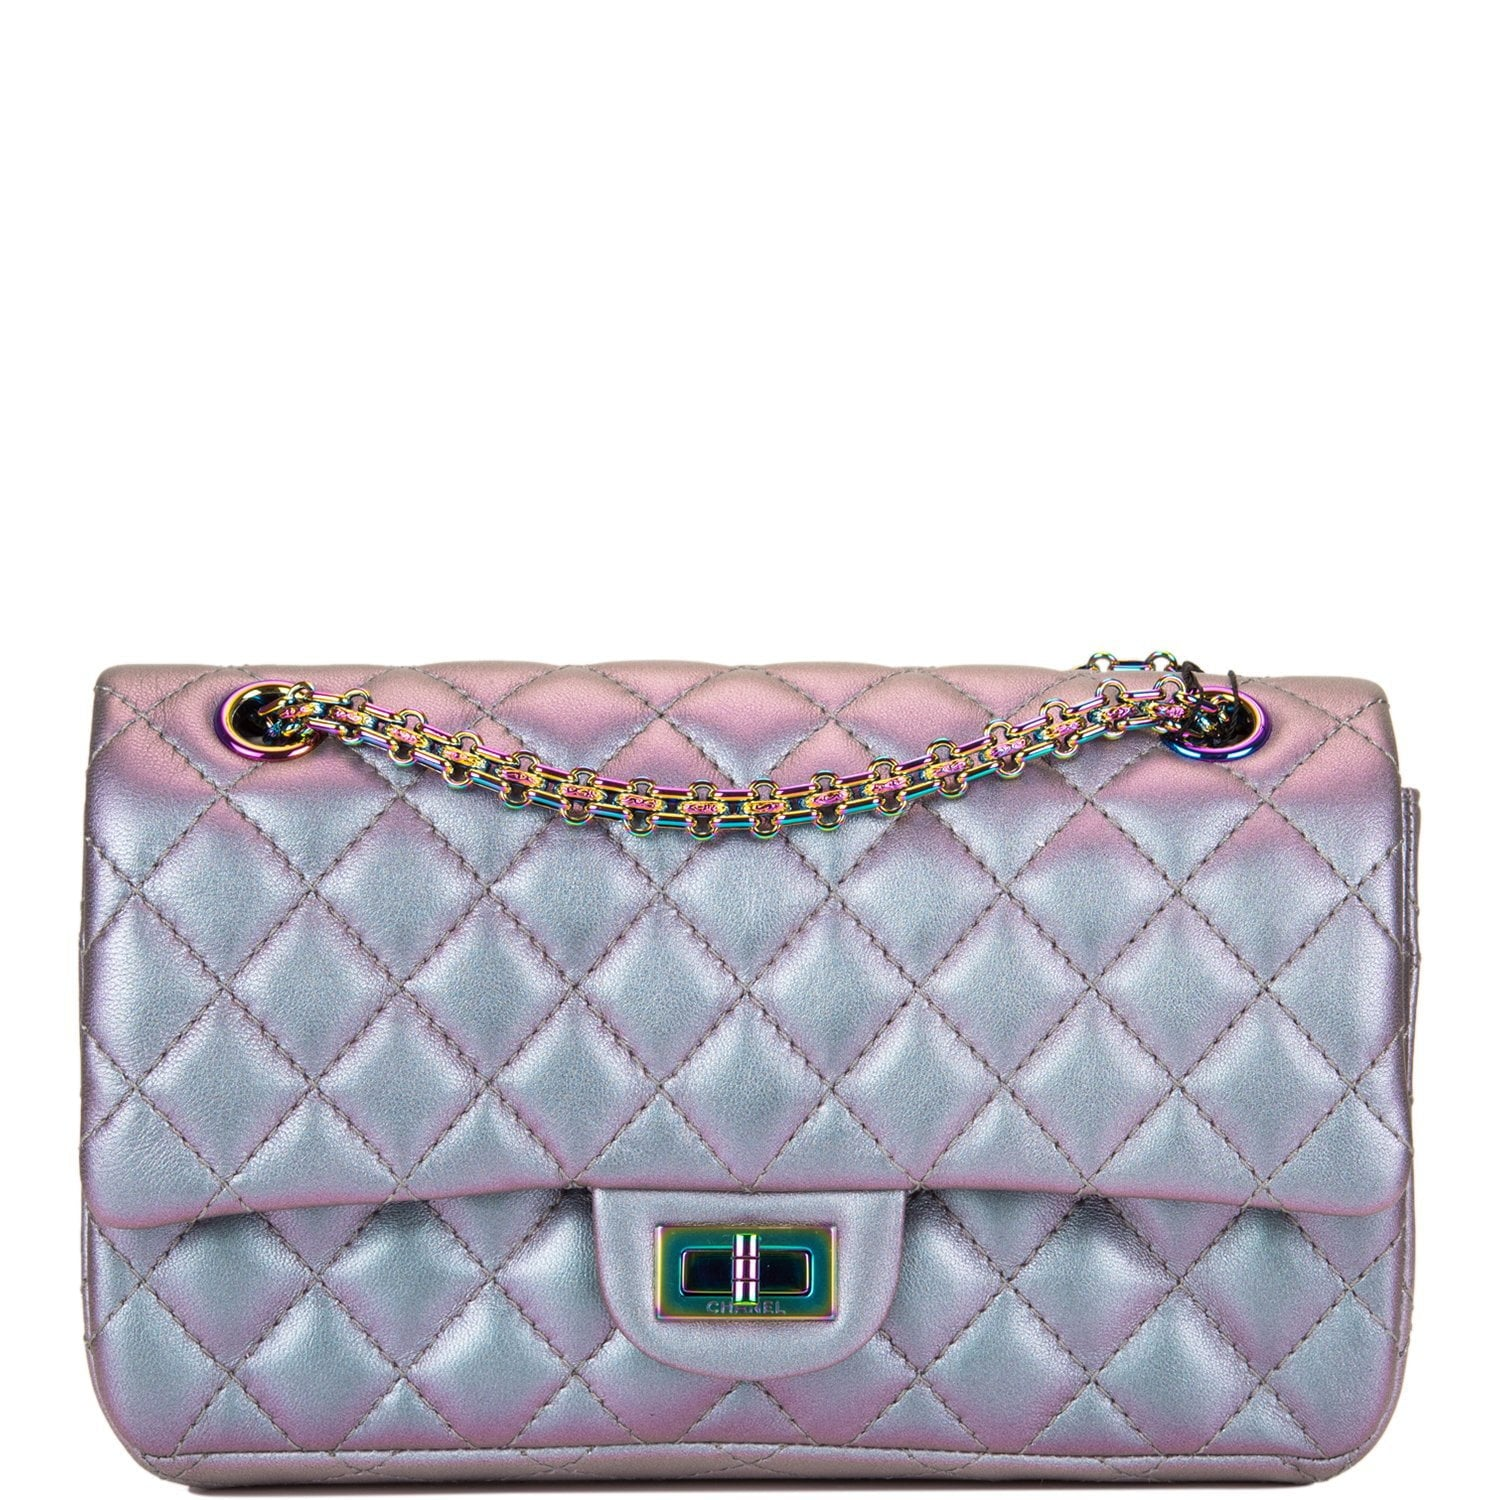 86272cbcb04f Chanel Light Purple Mermaid Iridescent Goatskin Medium 2.55 Reissue Double  Flap Bag ...